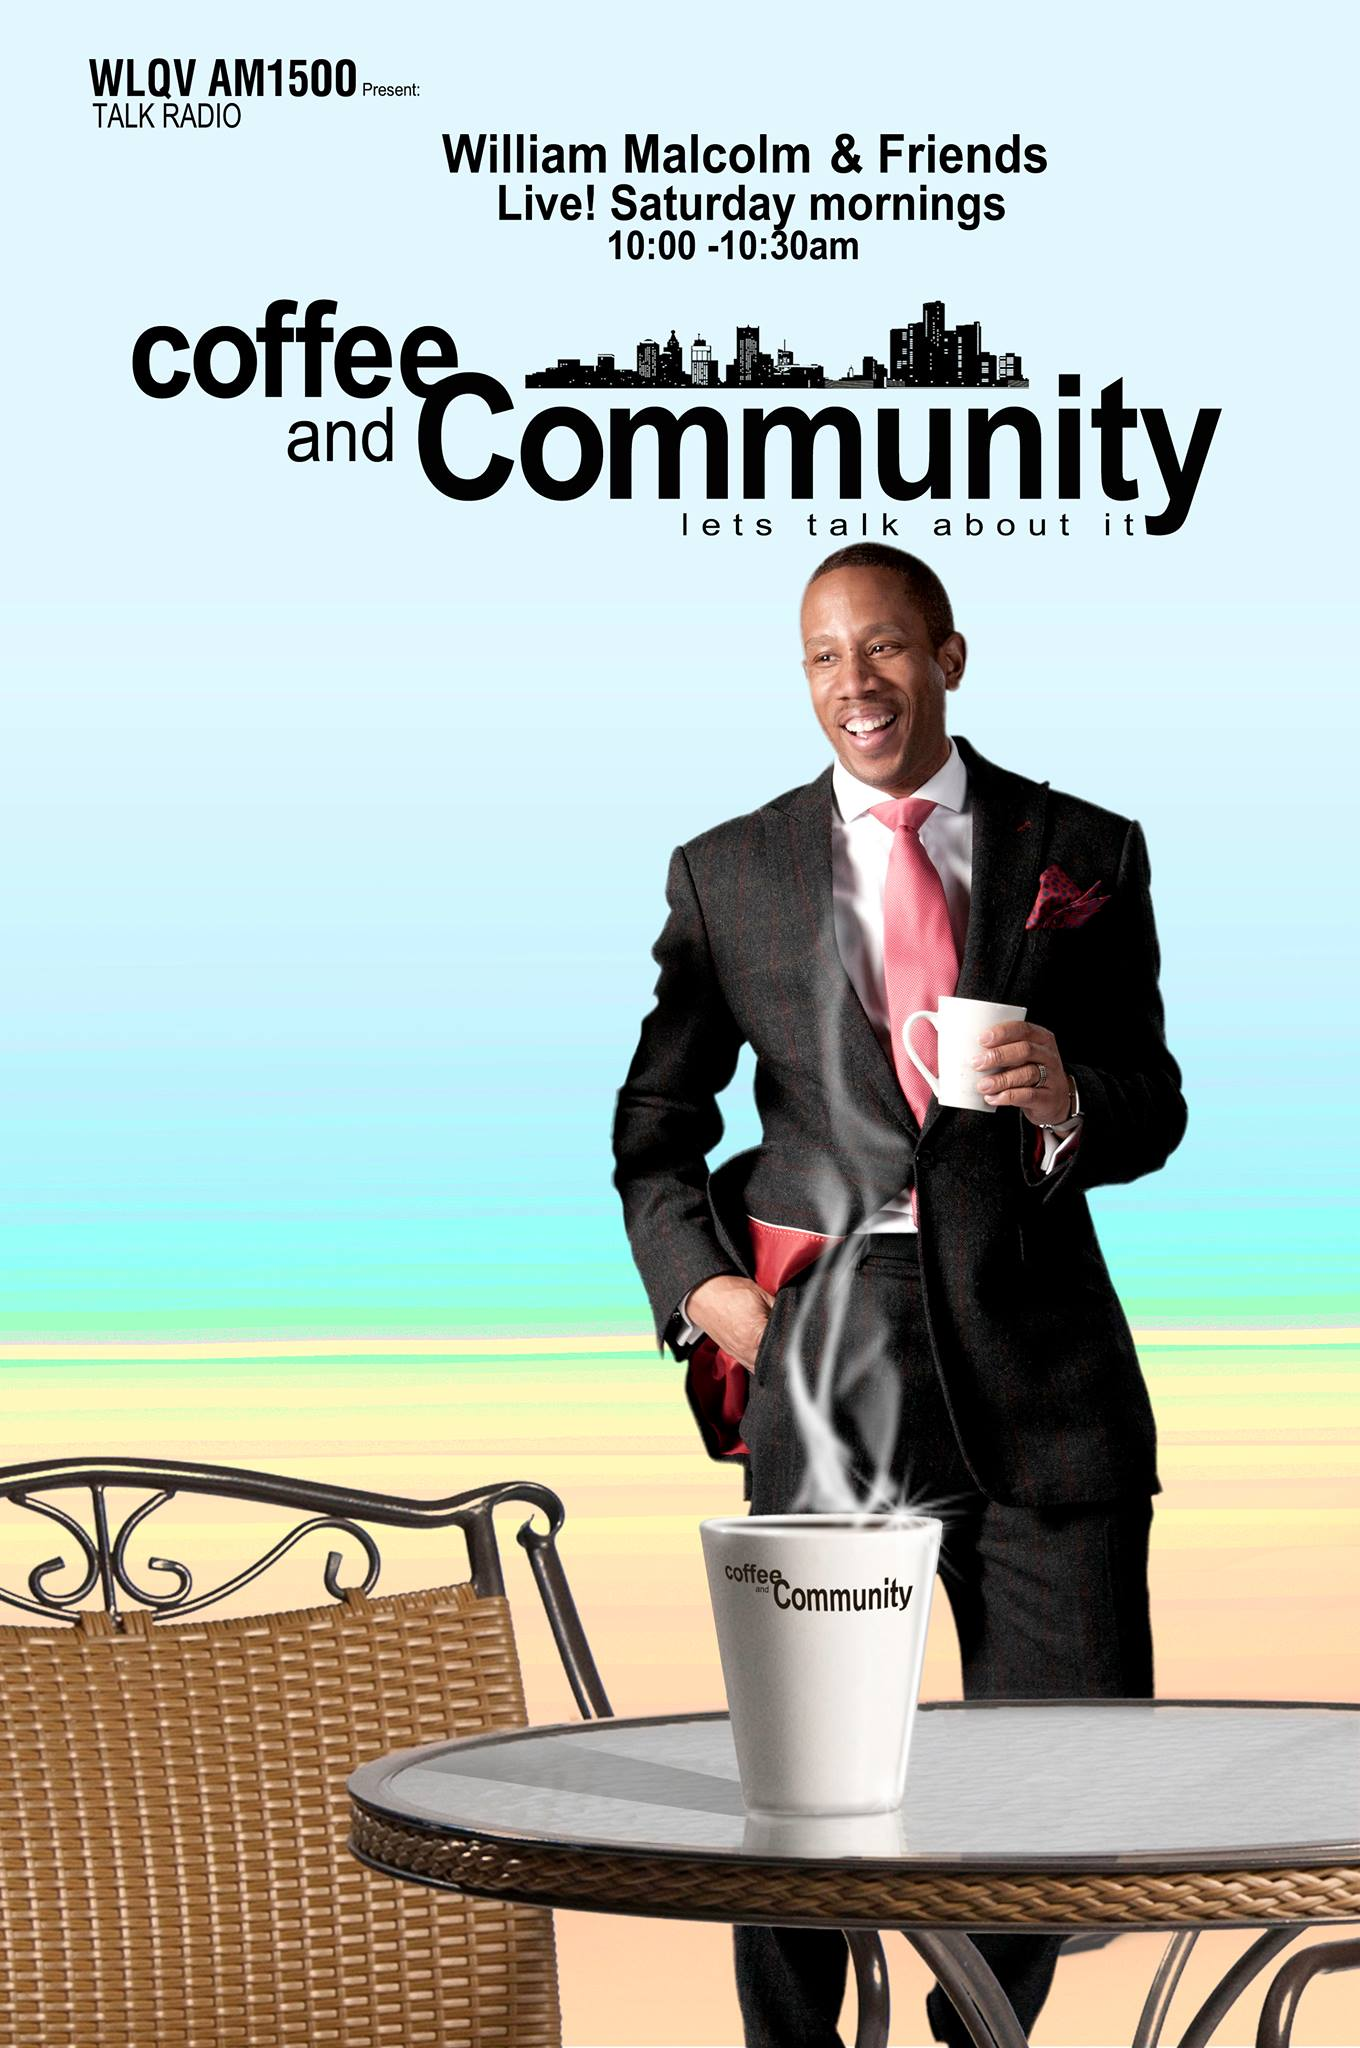 William Malcolm Detroit Designer Starts Coffee And Community Radio Show in Detroit